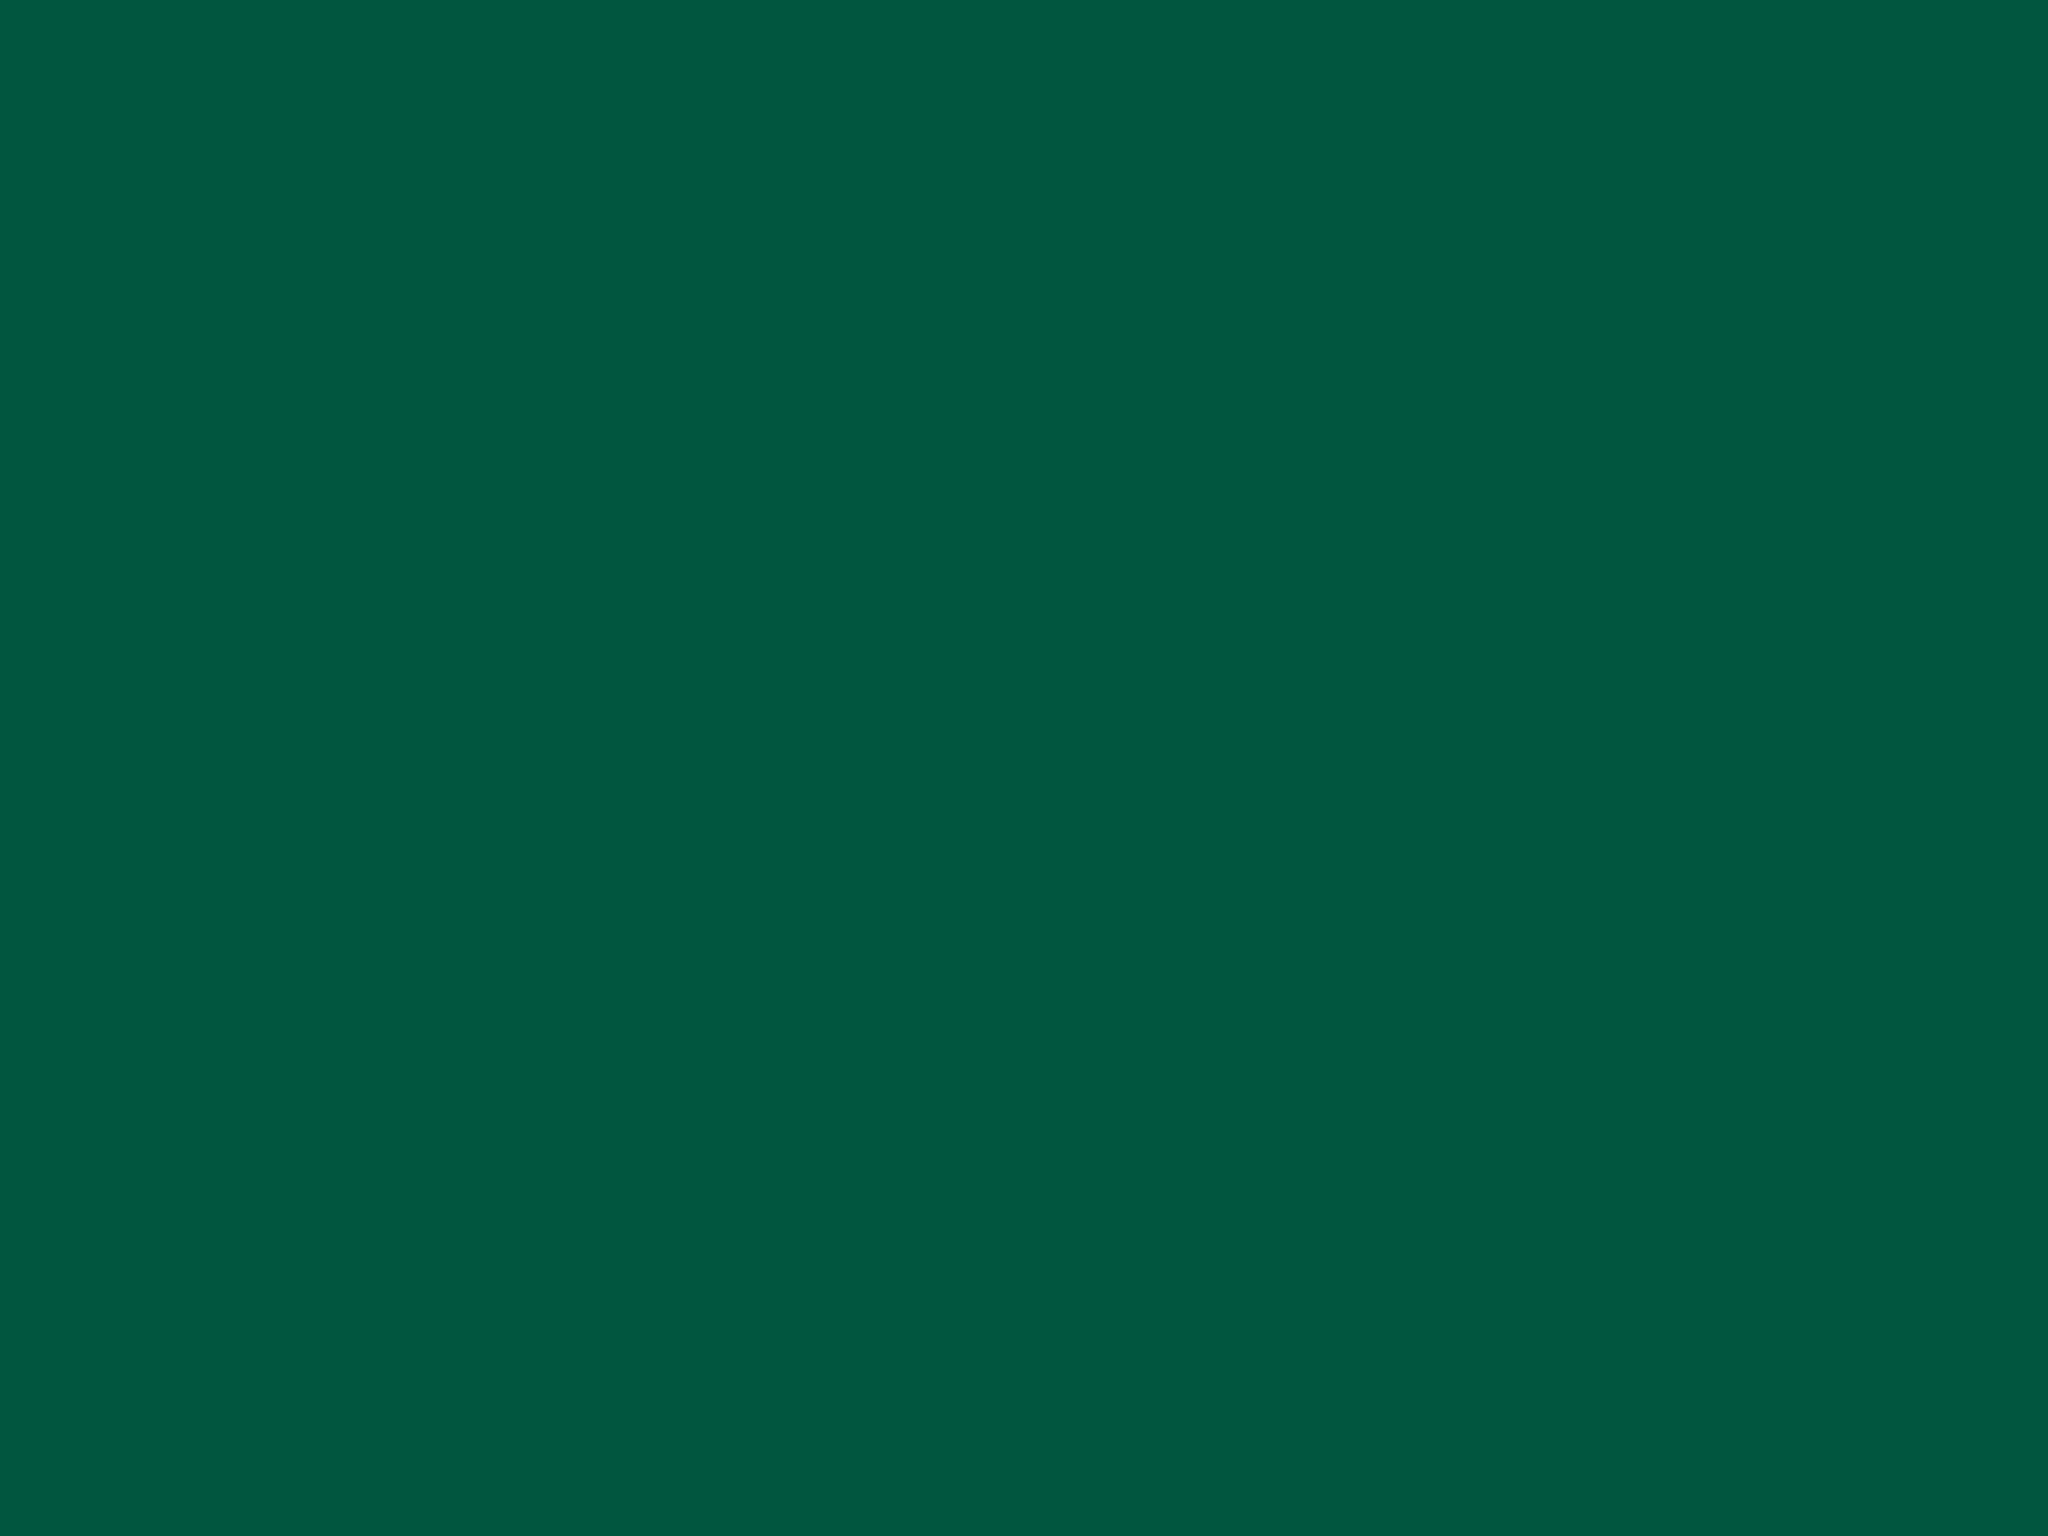 2048x1536 Sacramento State Green Solid Color Background